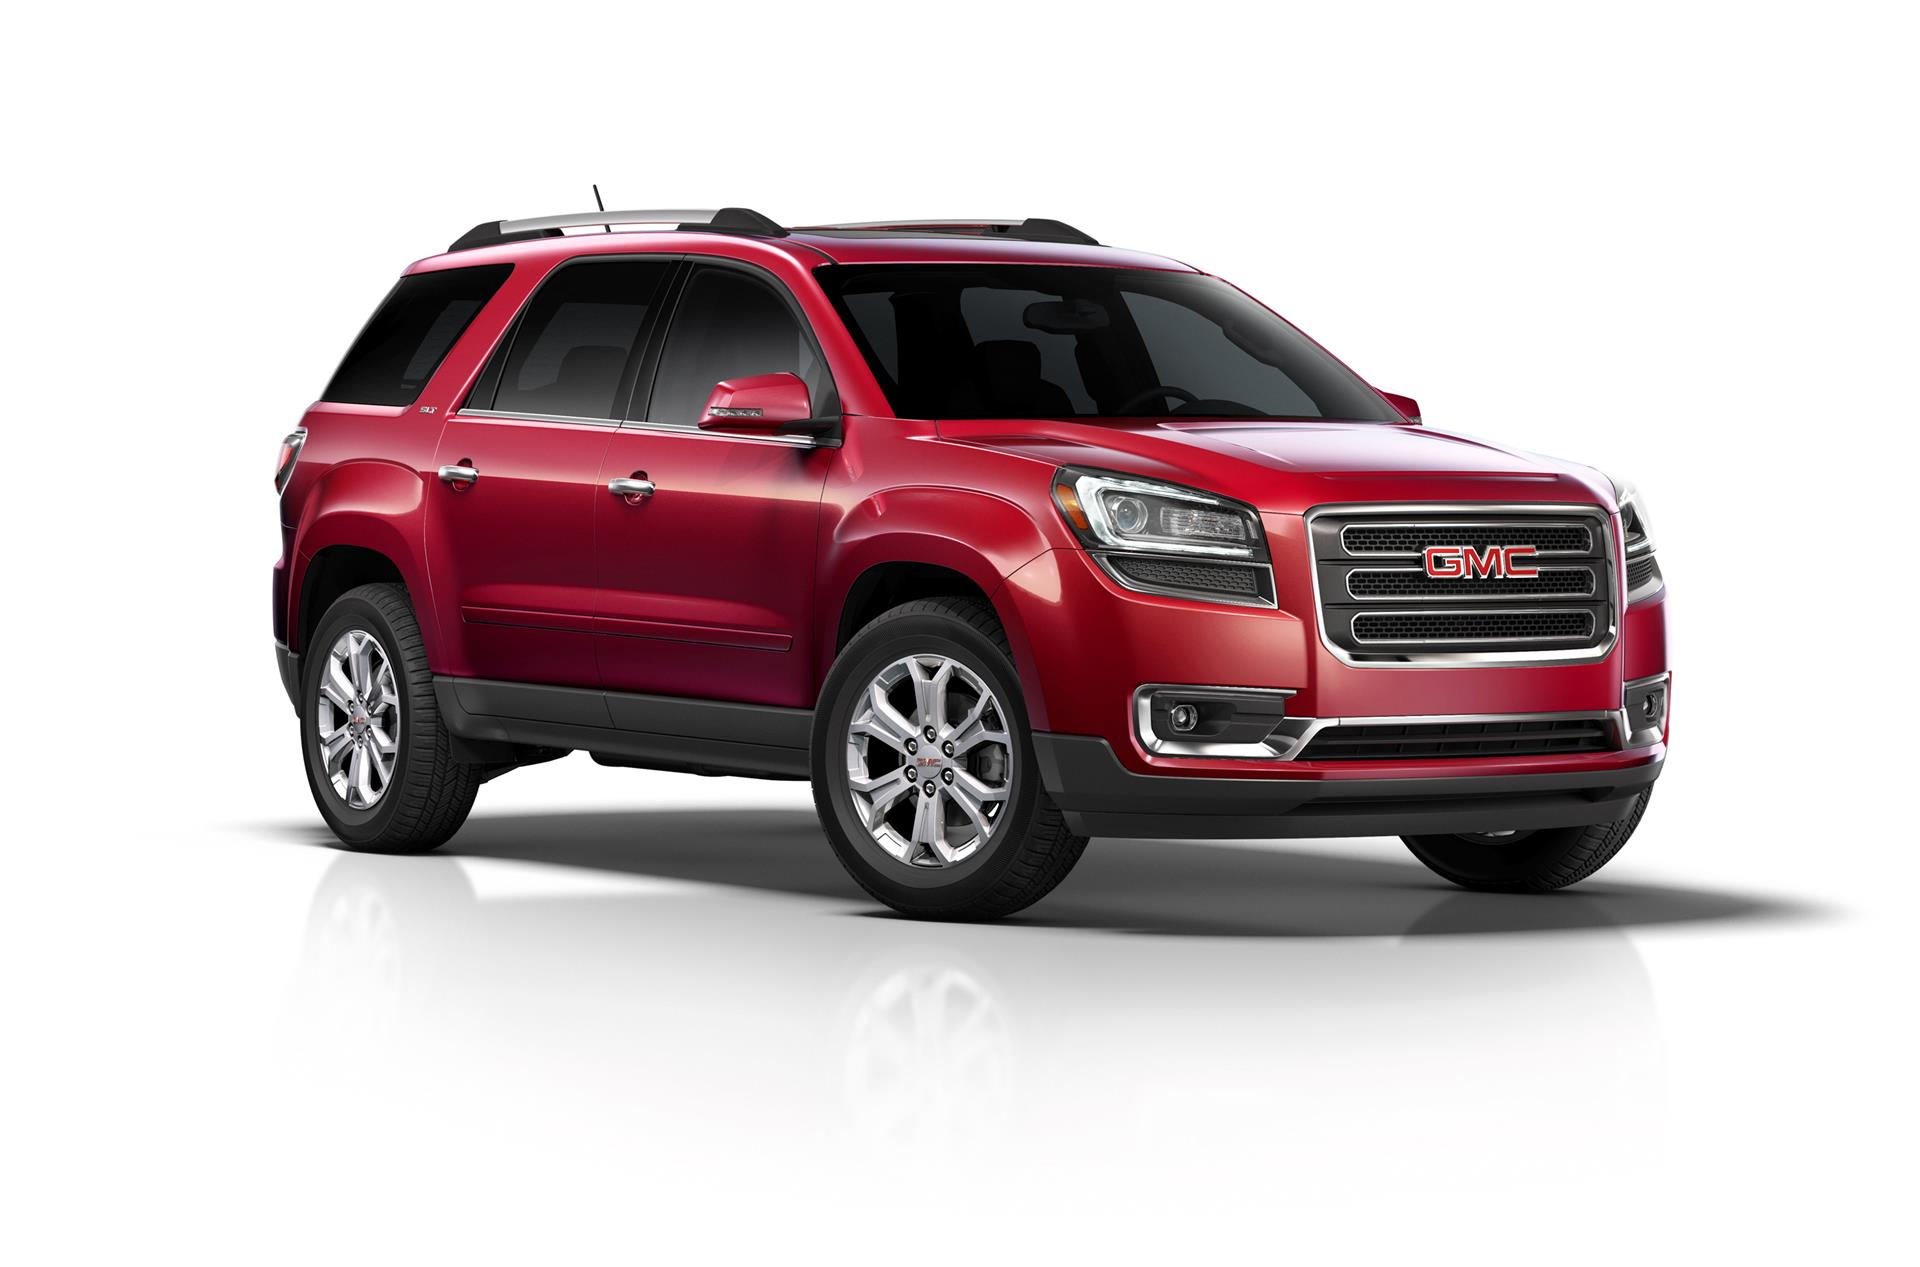 2015 gmc terrain red. 2015 gmc terrain red